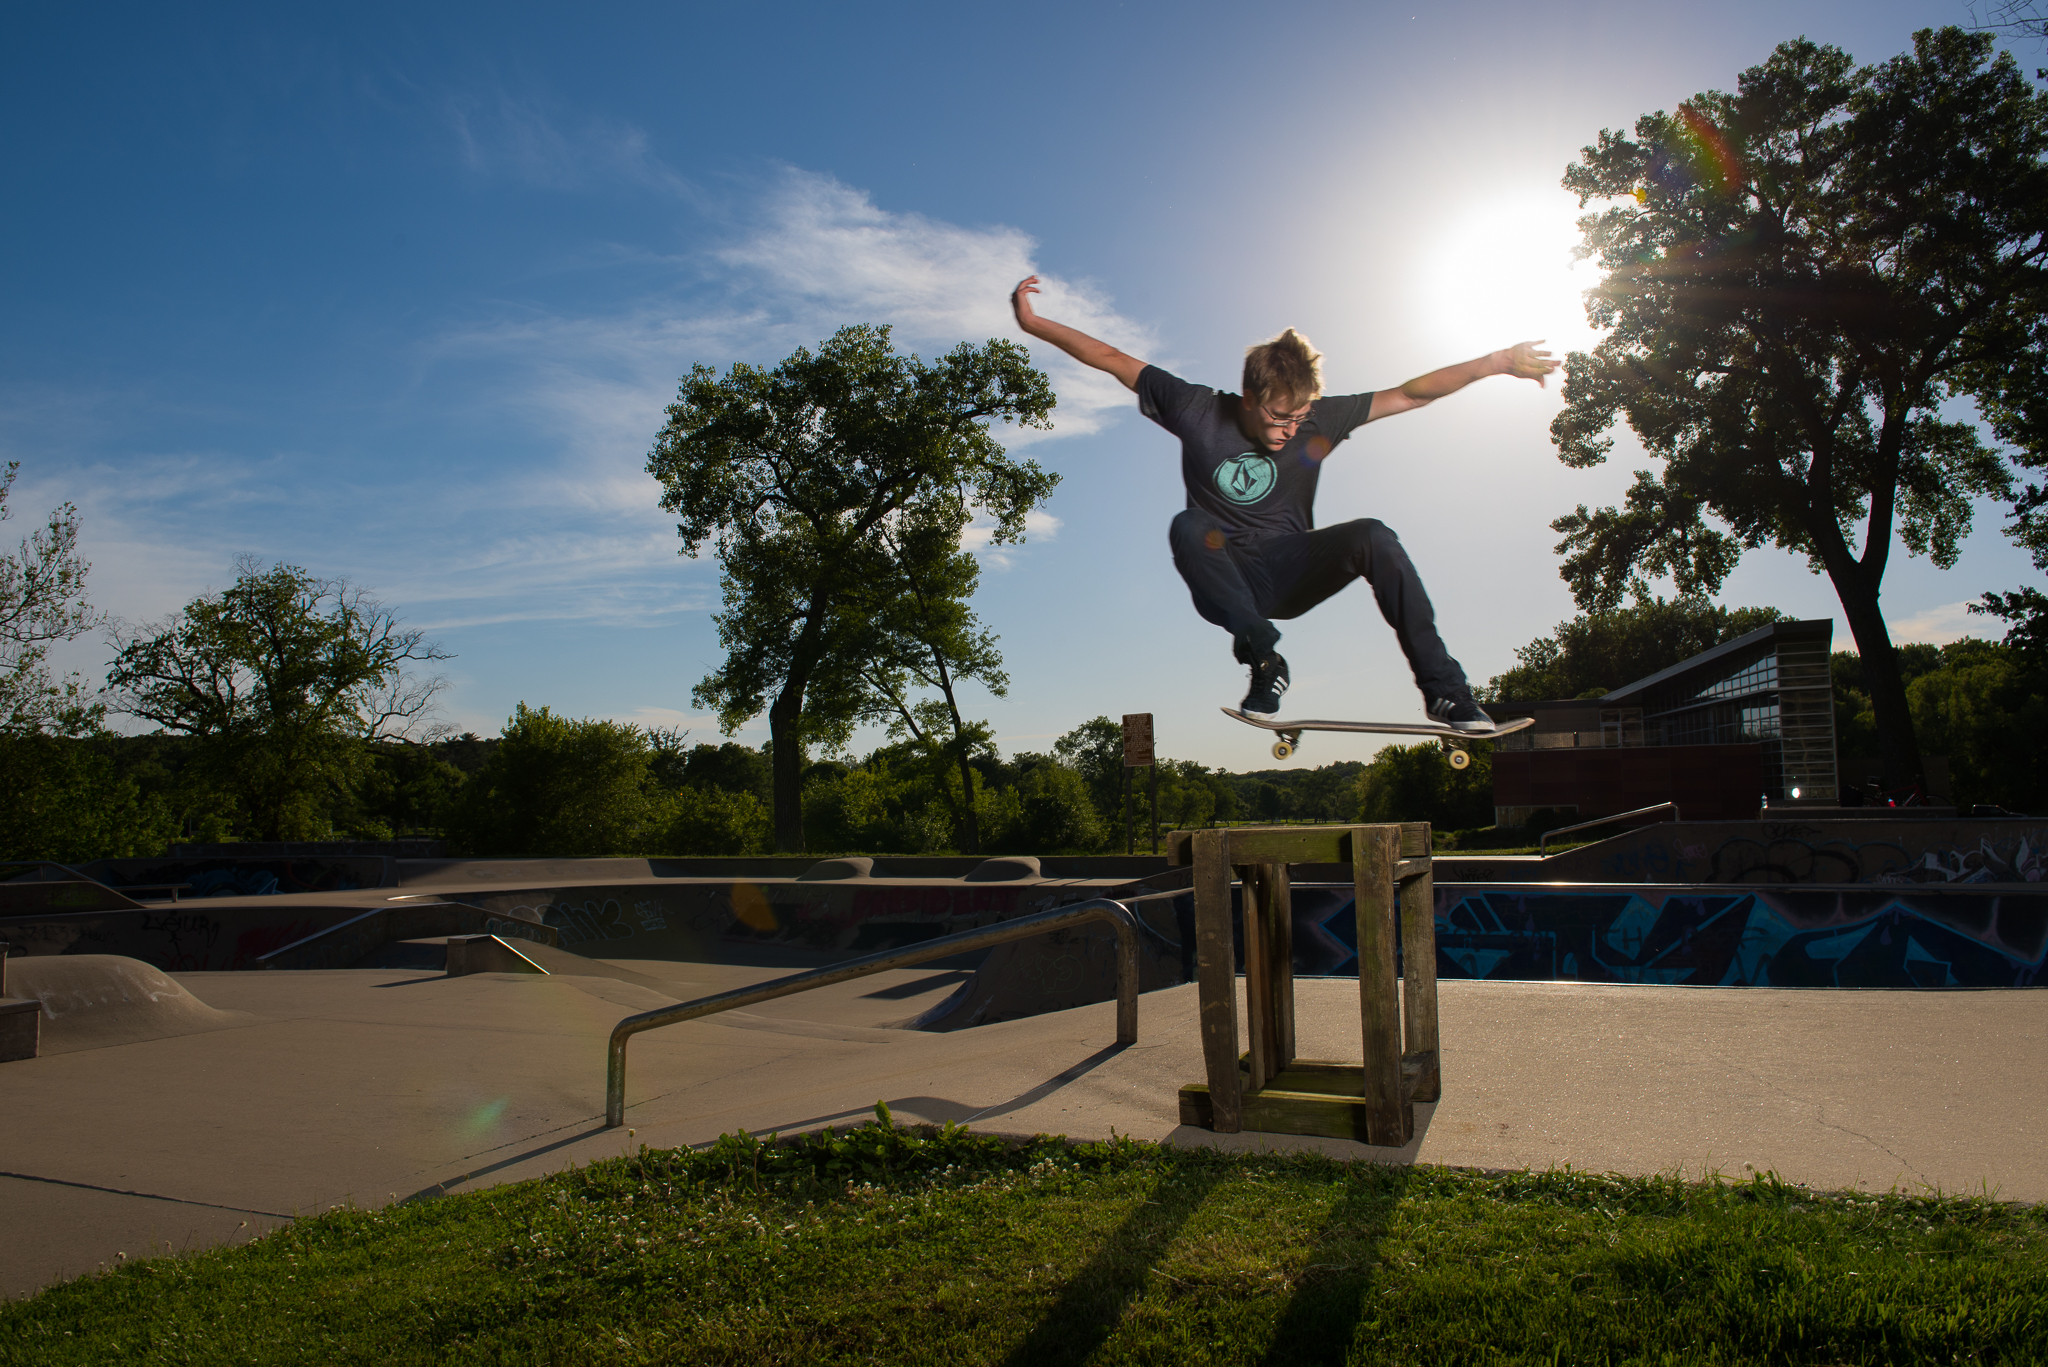 Senior Pictures Iowa City Skate Park Ivy Towler-14